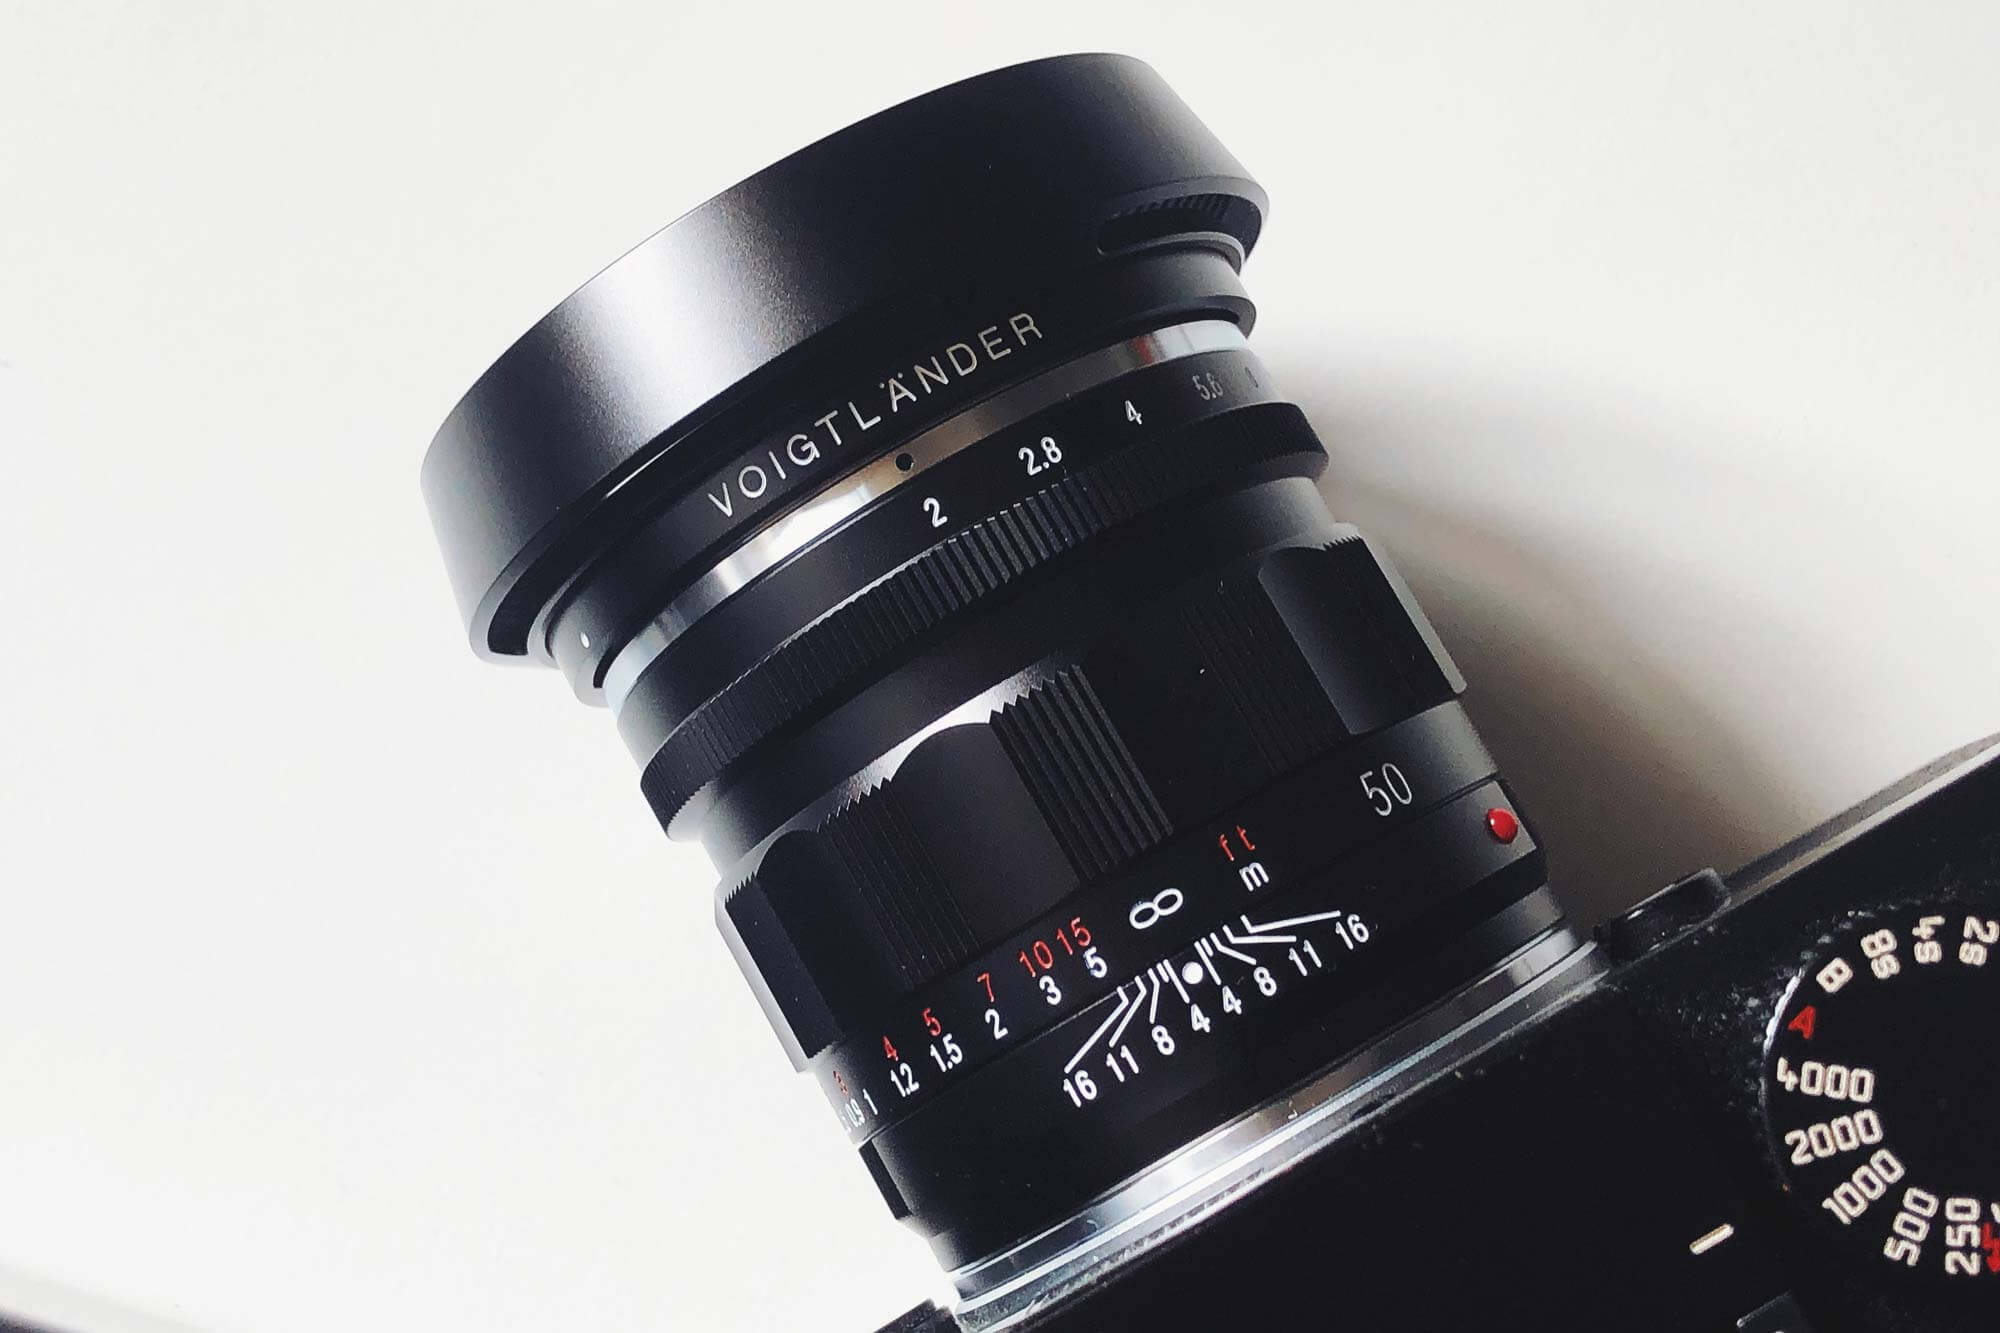 voigtlander-lens-50mm-f2-apo-lanthar-apochromat-lenses-vm-m-mount-50-focal-black-LH-13-hood-M9P-box-new-release-closer-look-first-test-review